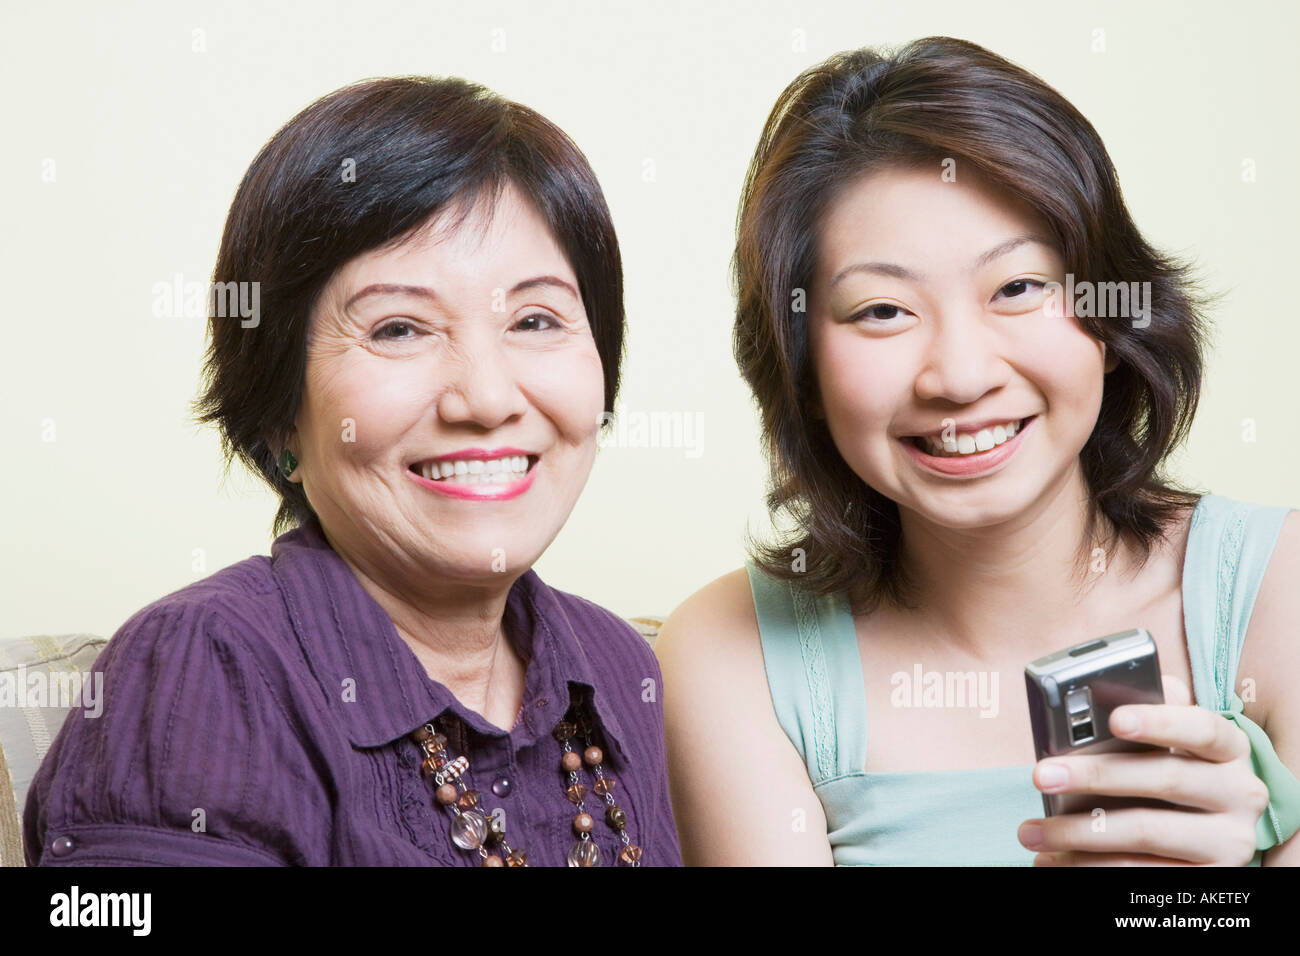 Portrait of a senior woman sitting with her granddaughter and smiling - Stock Image